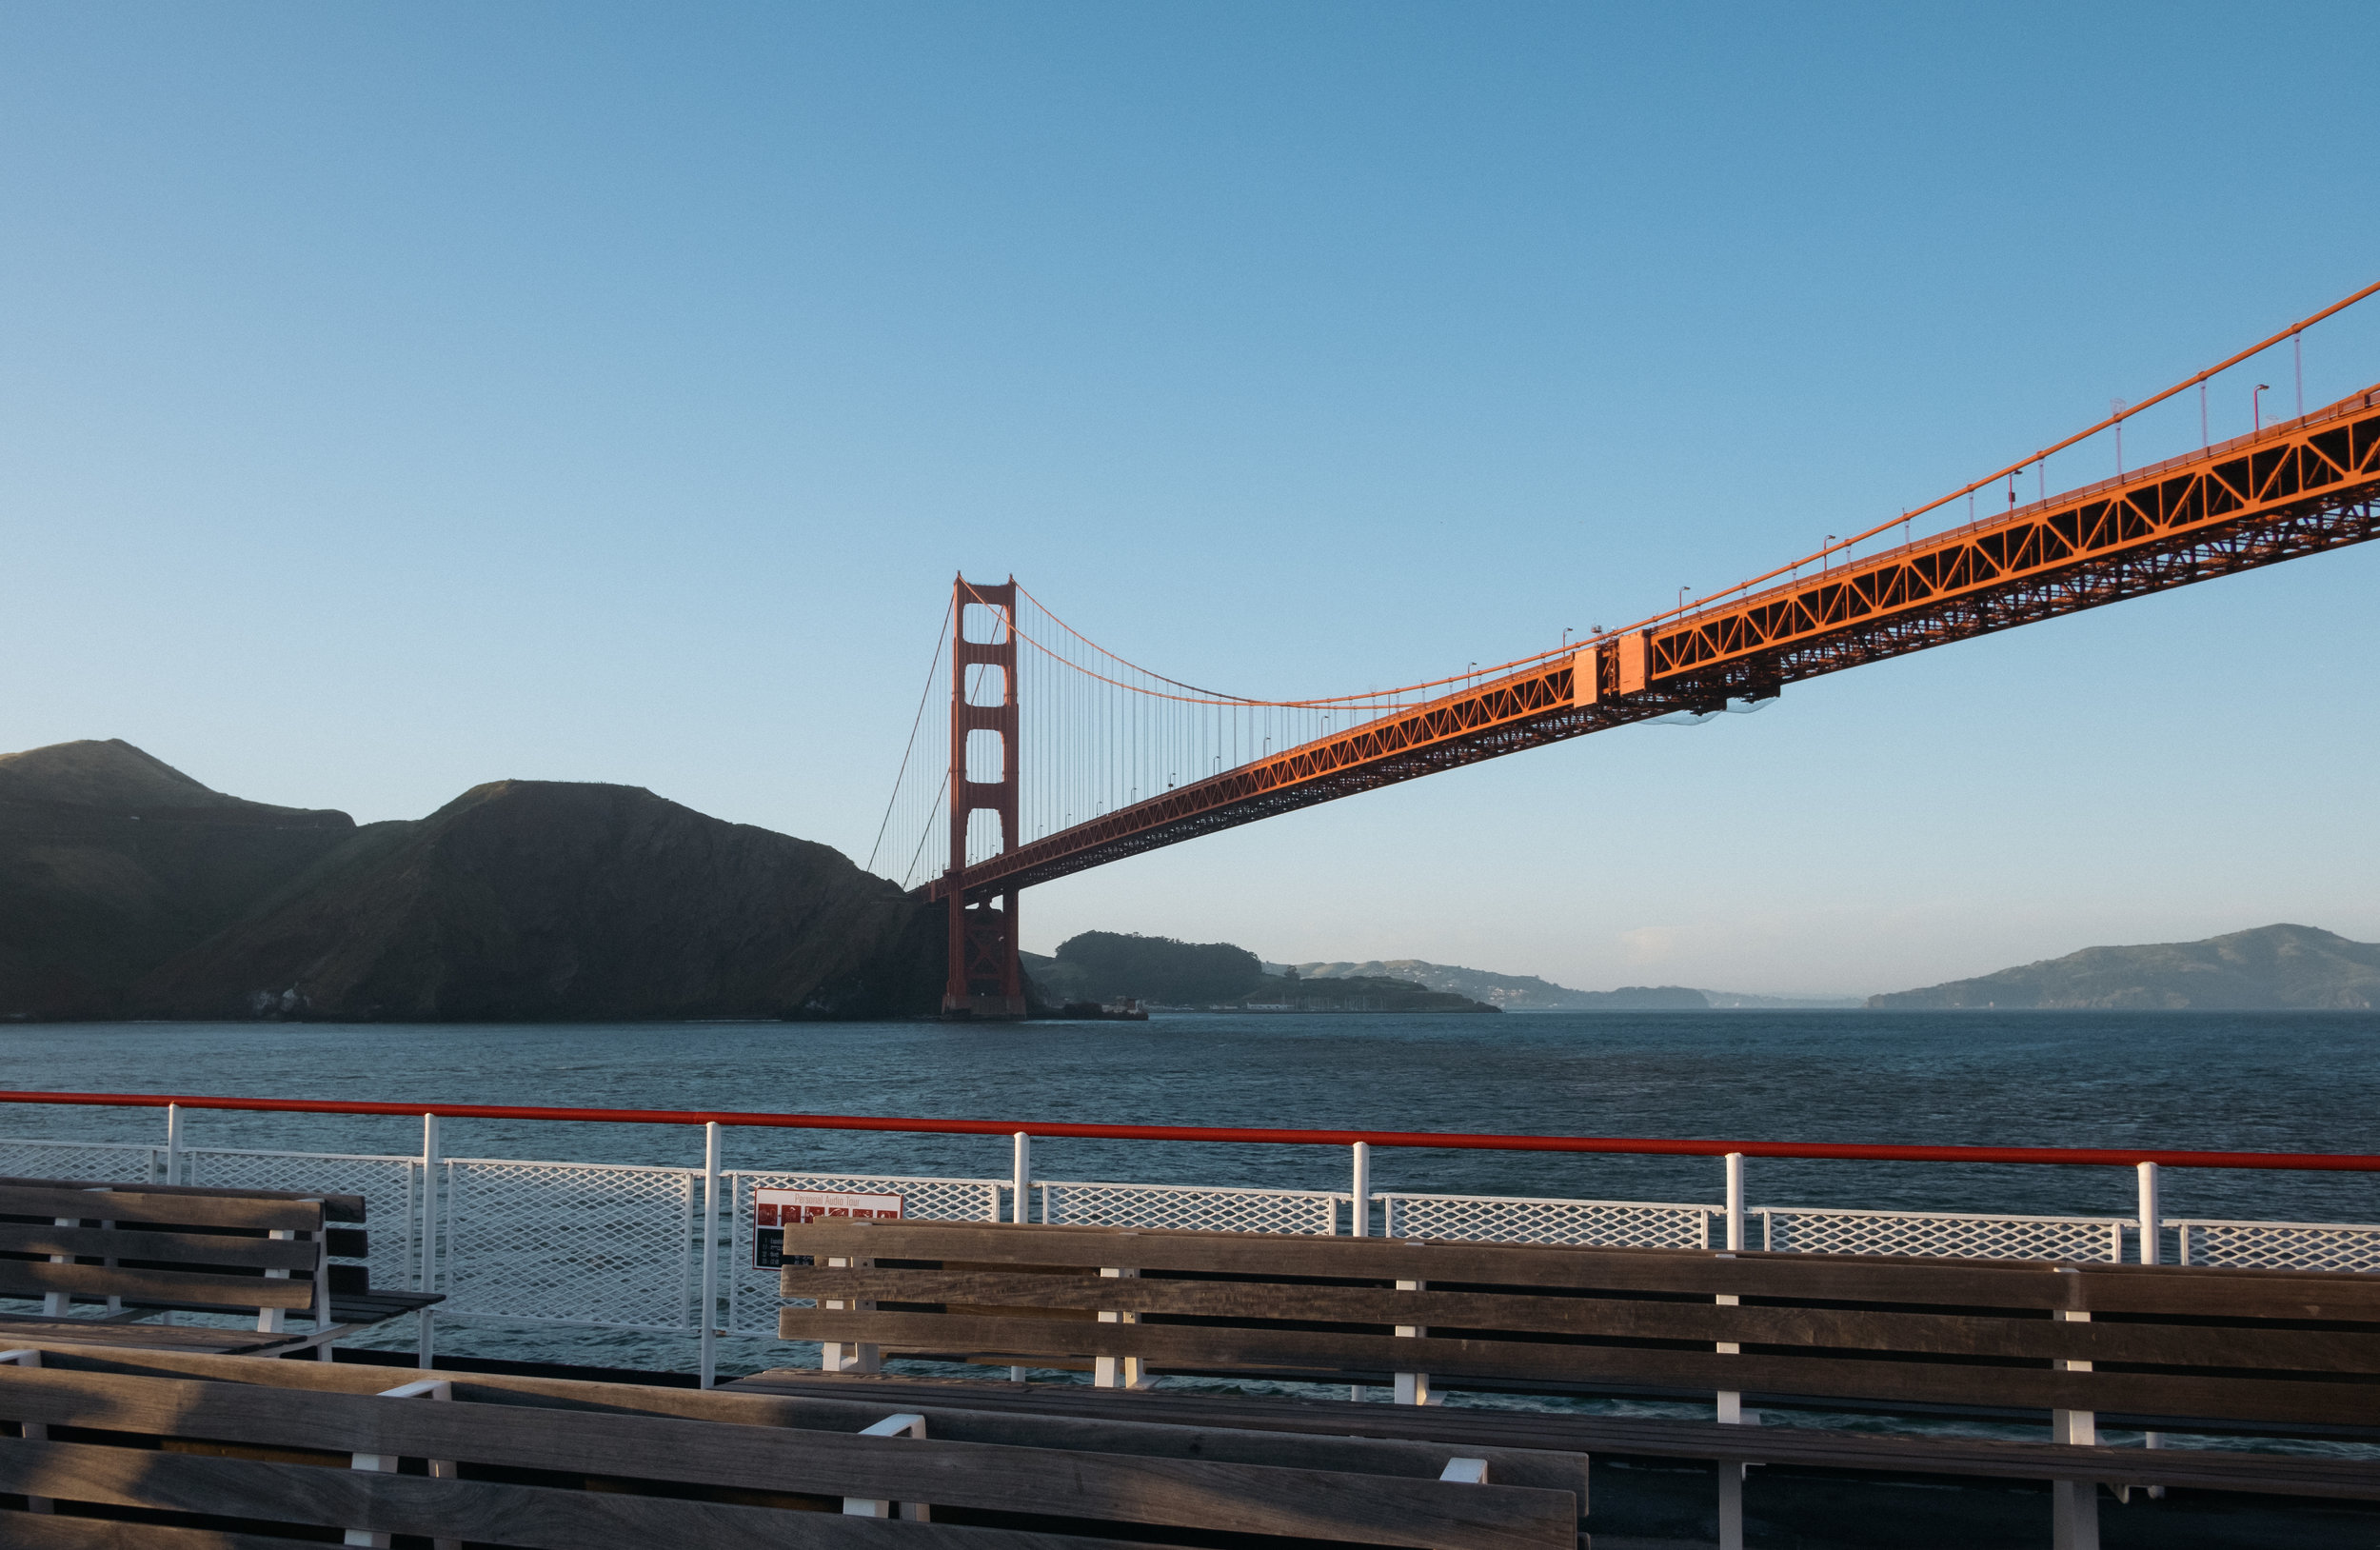 The Golden Gate Bridge from a boat